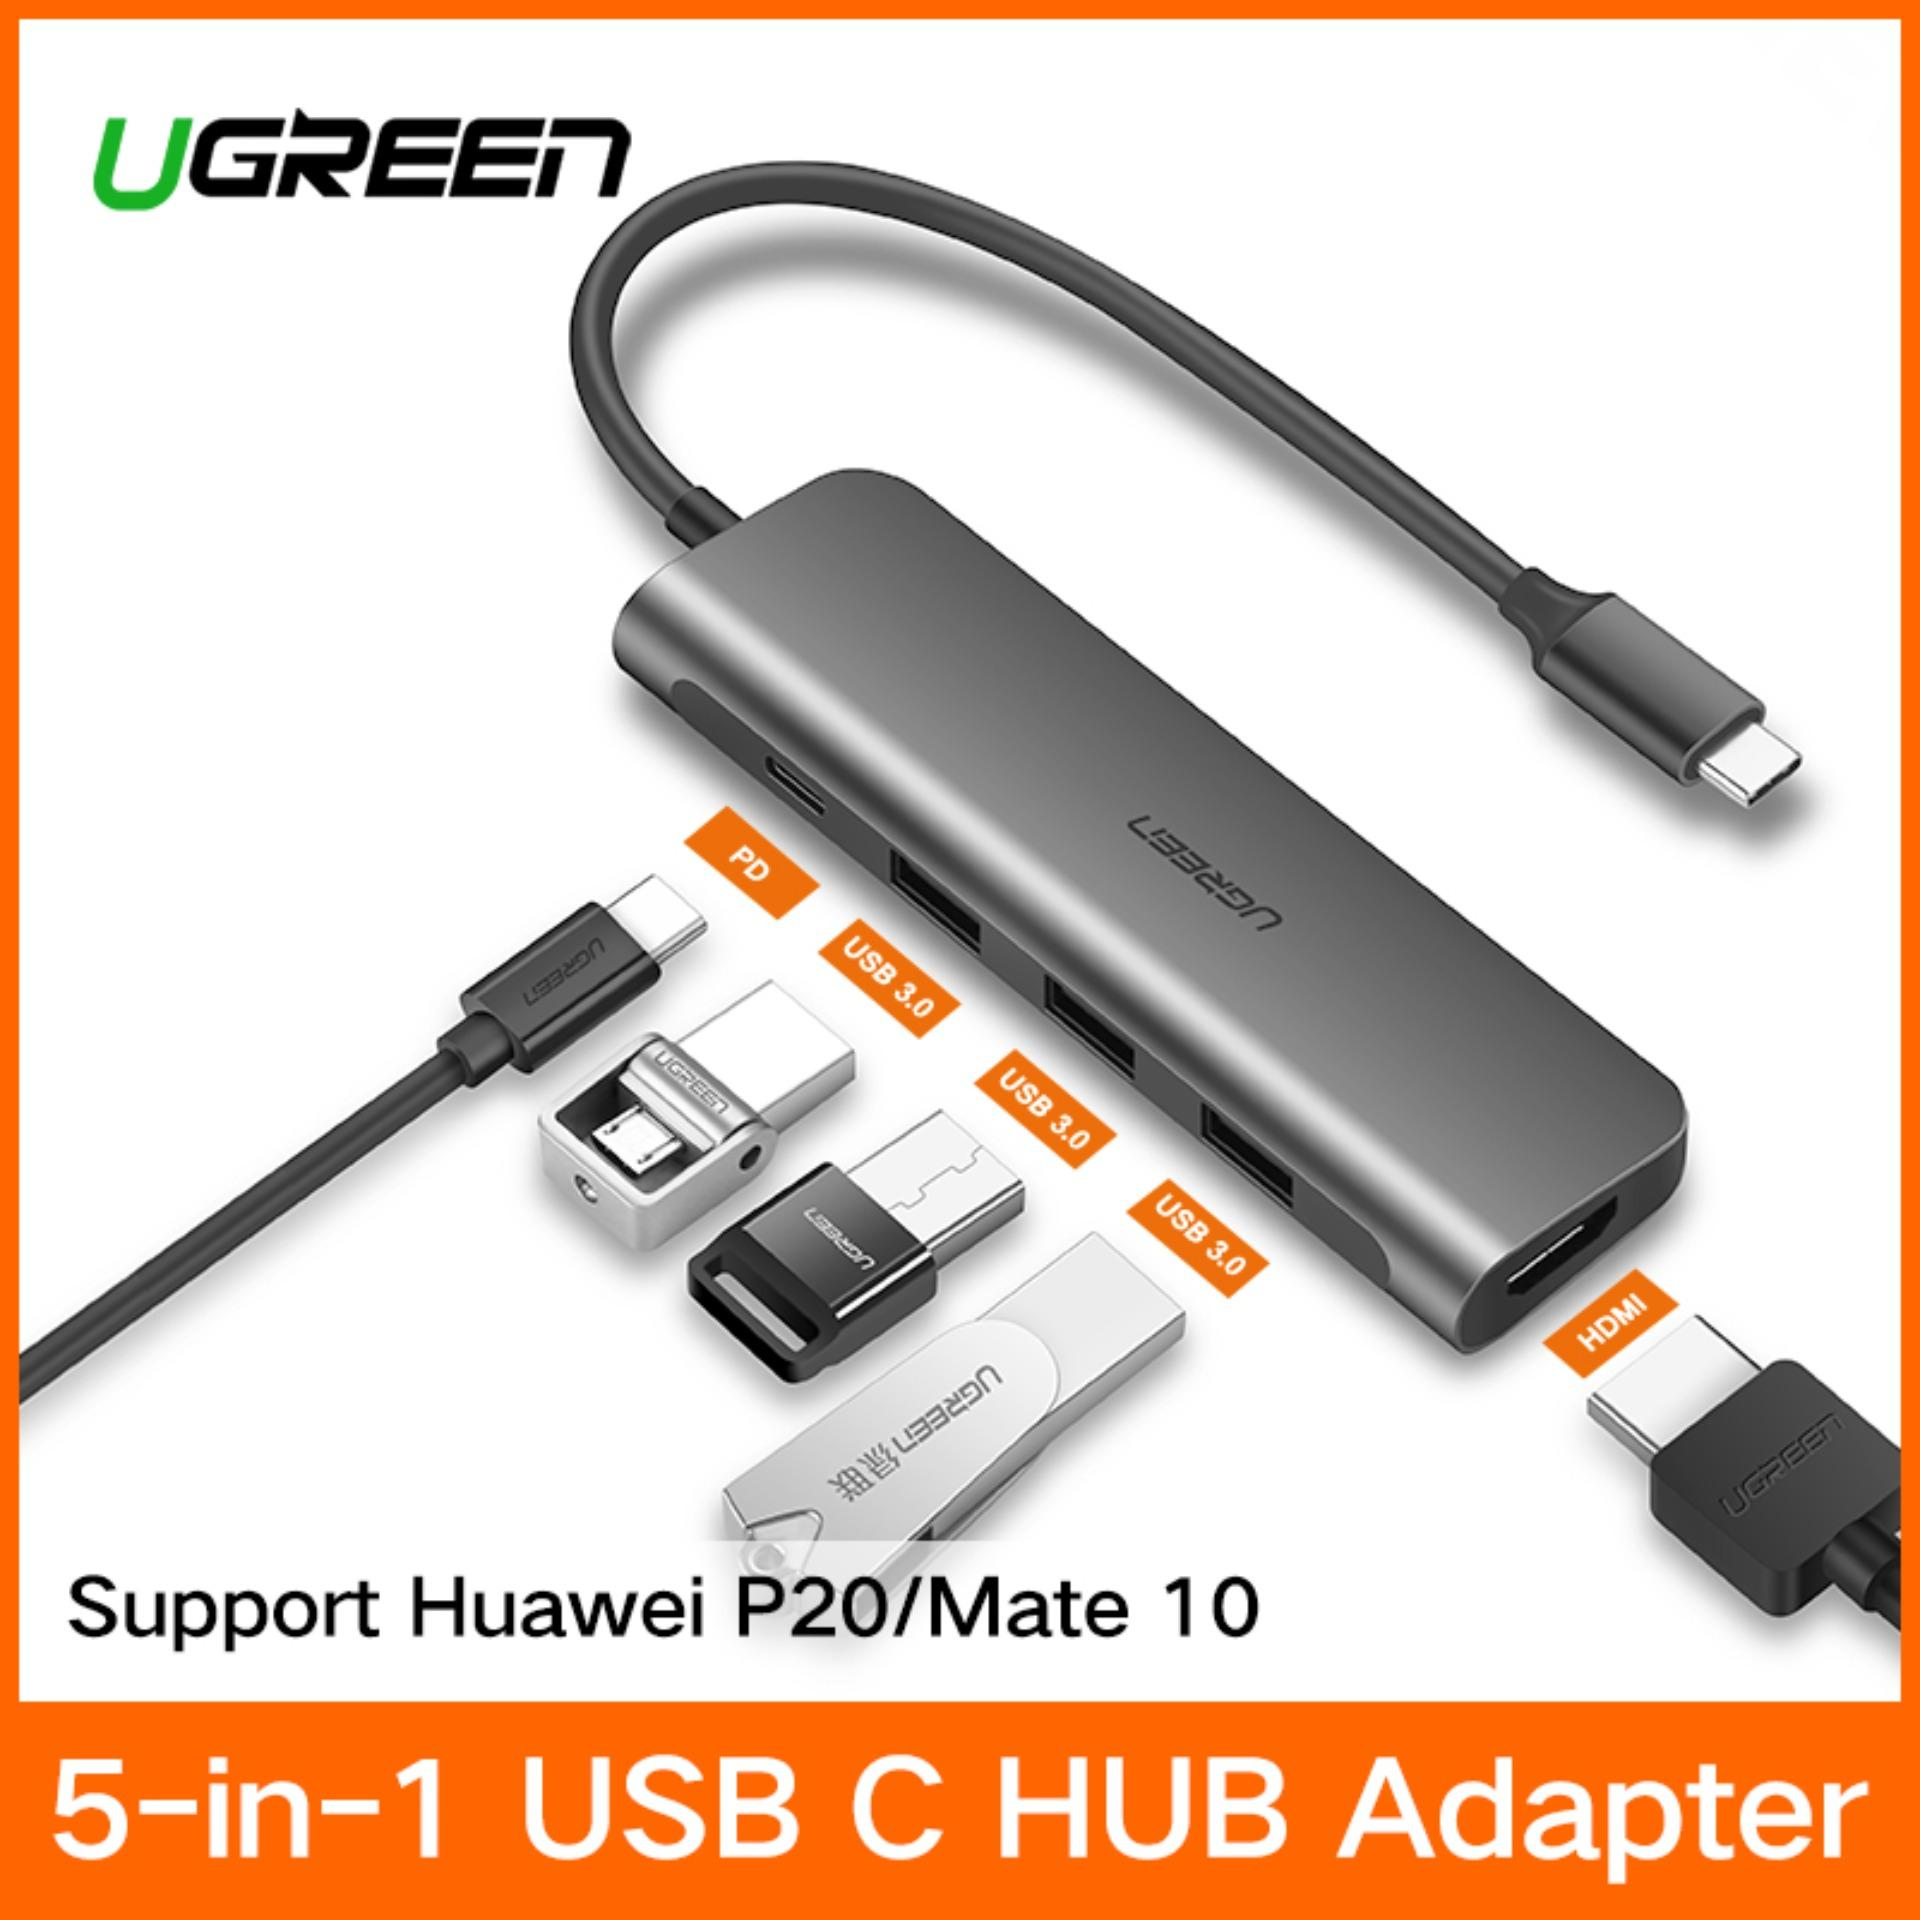 UGREEN (HDMI Version) USB C Hub, USB TYPE C 3.1 Adapter Dock with 4K HDMI/VGAPort, 3 USB 3.0 Ports, 60W USB C PD Charge Port for MacBook Pro 2017 2016, Dell XPS 15 13, HP Spectre/Envy, Huawei mate 10/P20, Samsung Galaxy S9 S8 - intl